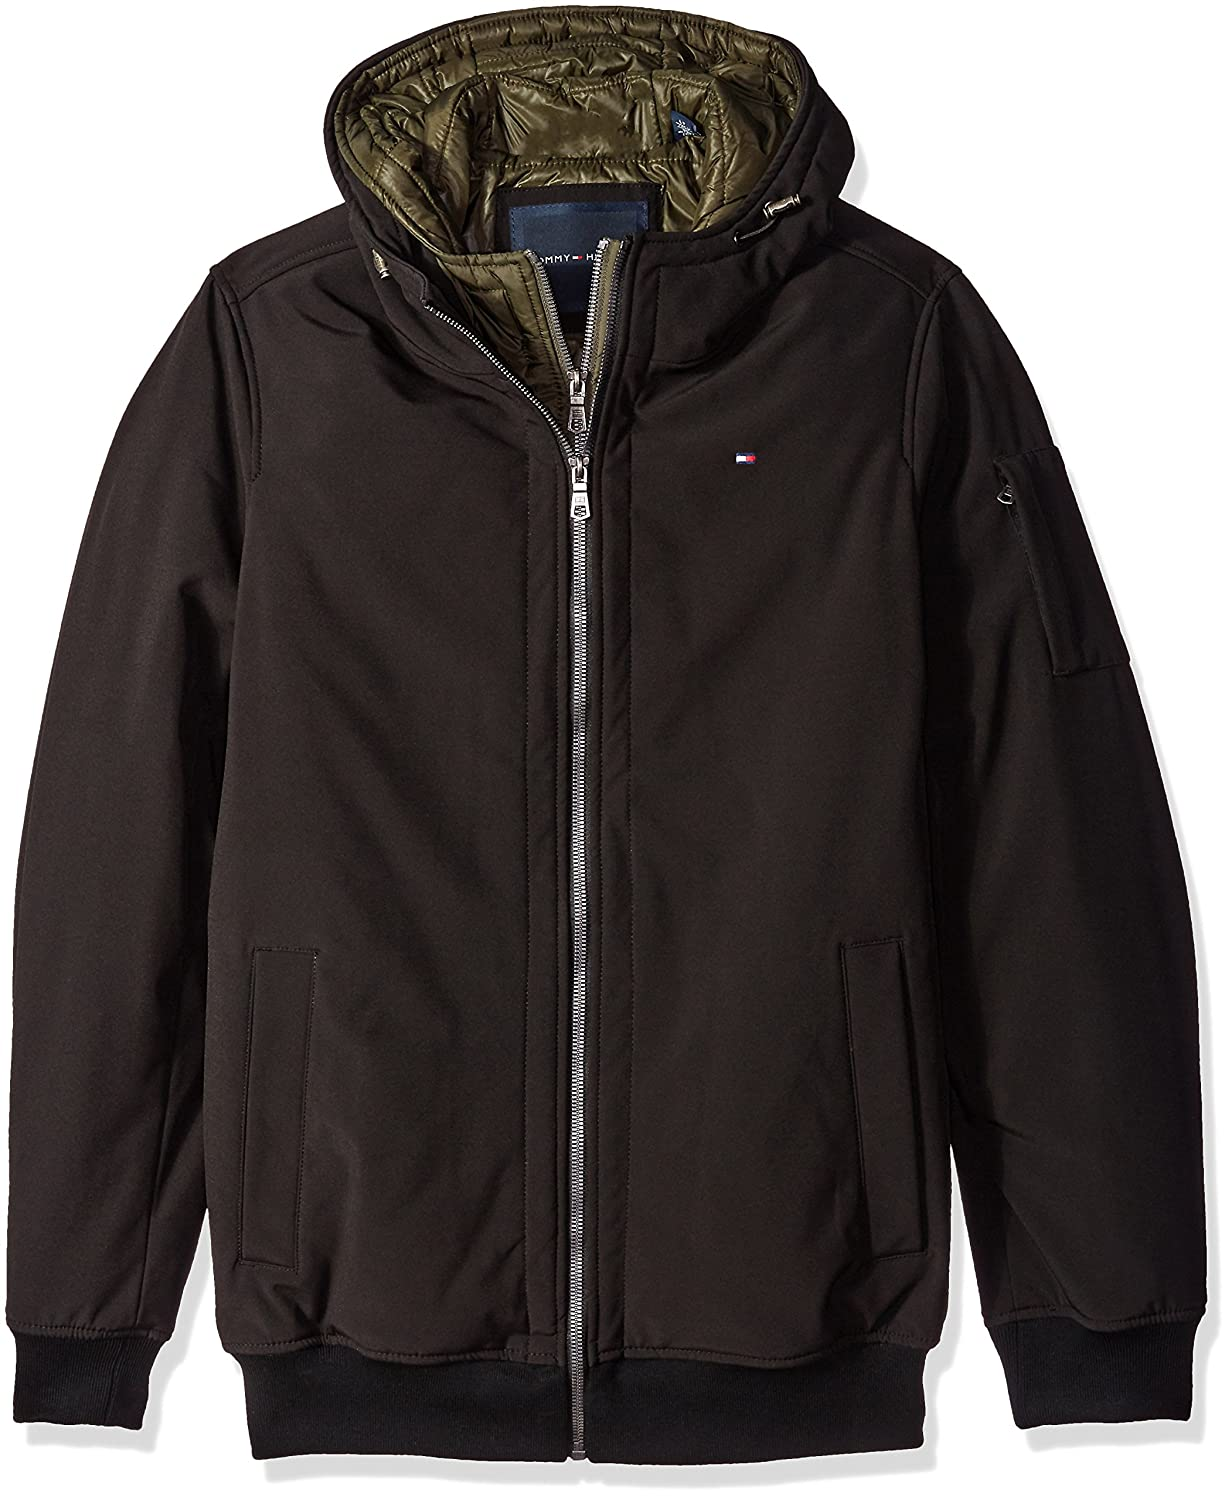 77ba760d4 Tommy Hilfiger Men's Size Tall Soft Shell Fashion Bomber with Contrast Bib  and Hood